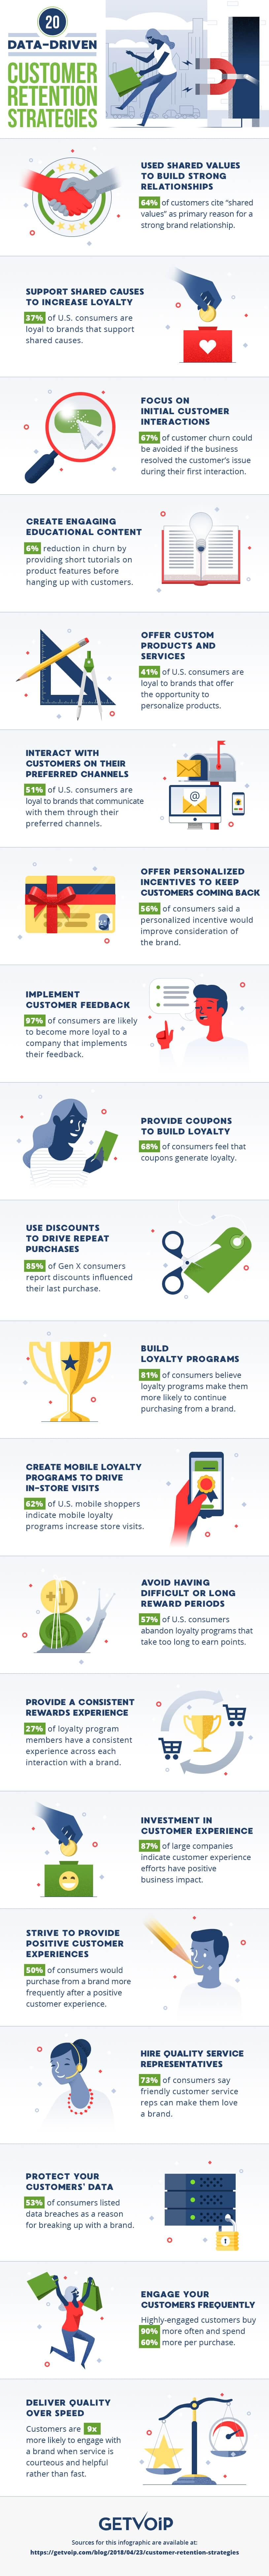 20 data driven customer retention strategies